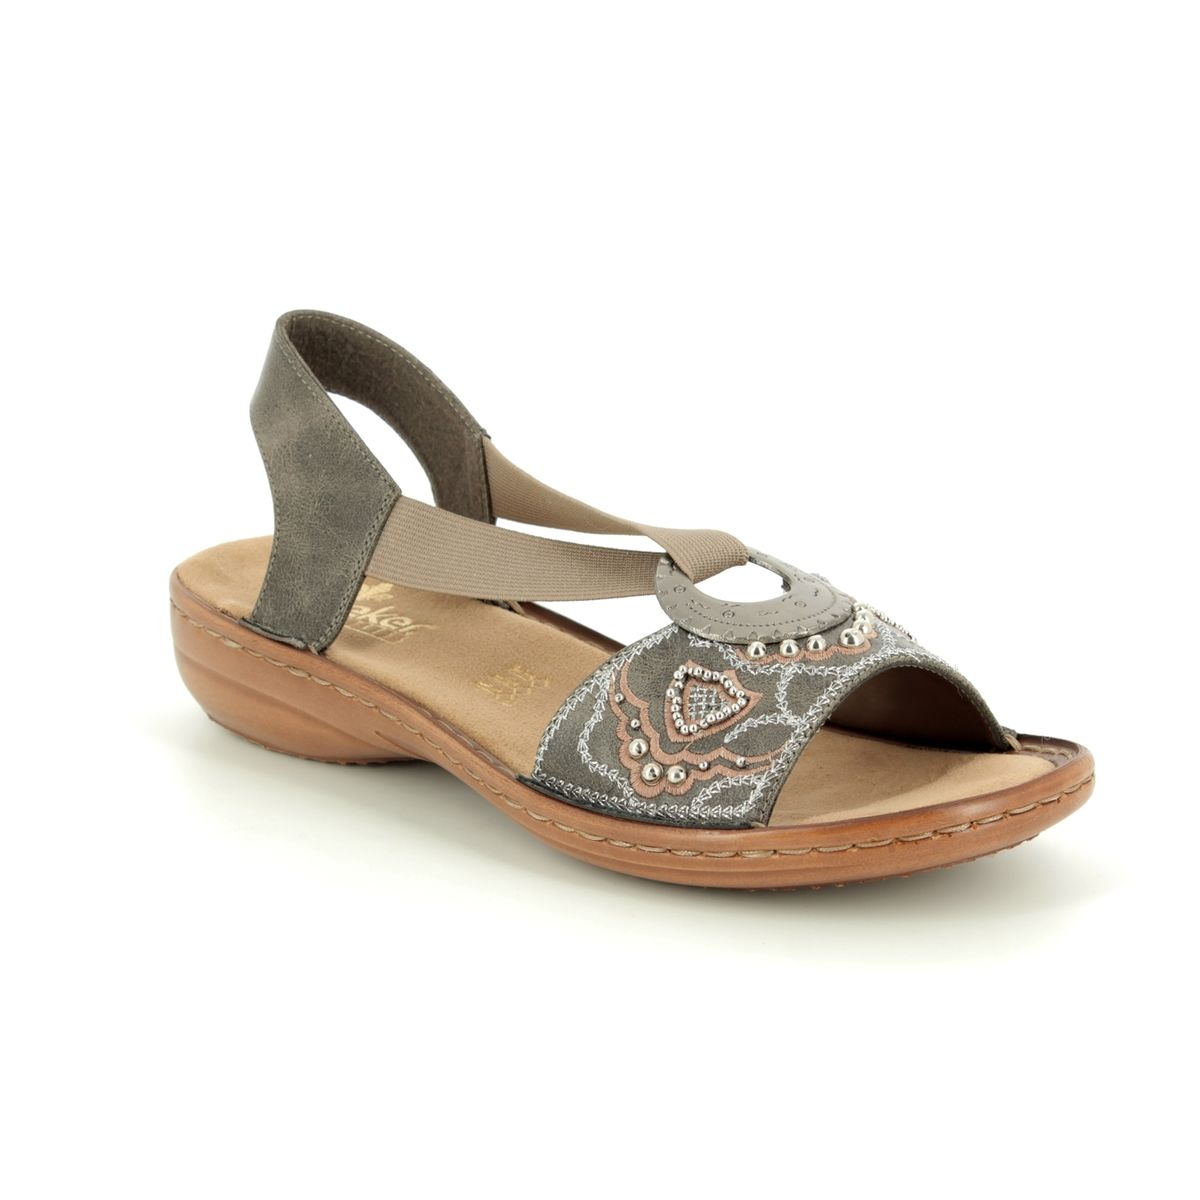 a1787aca0878 Rieker Sandals - Dark taupe - 608B9-45 REGINELDA